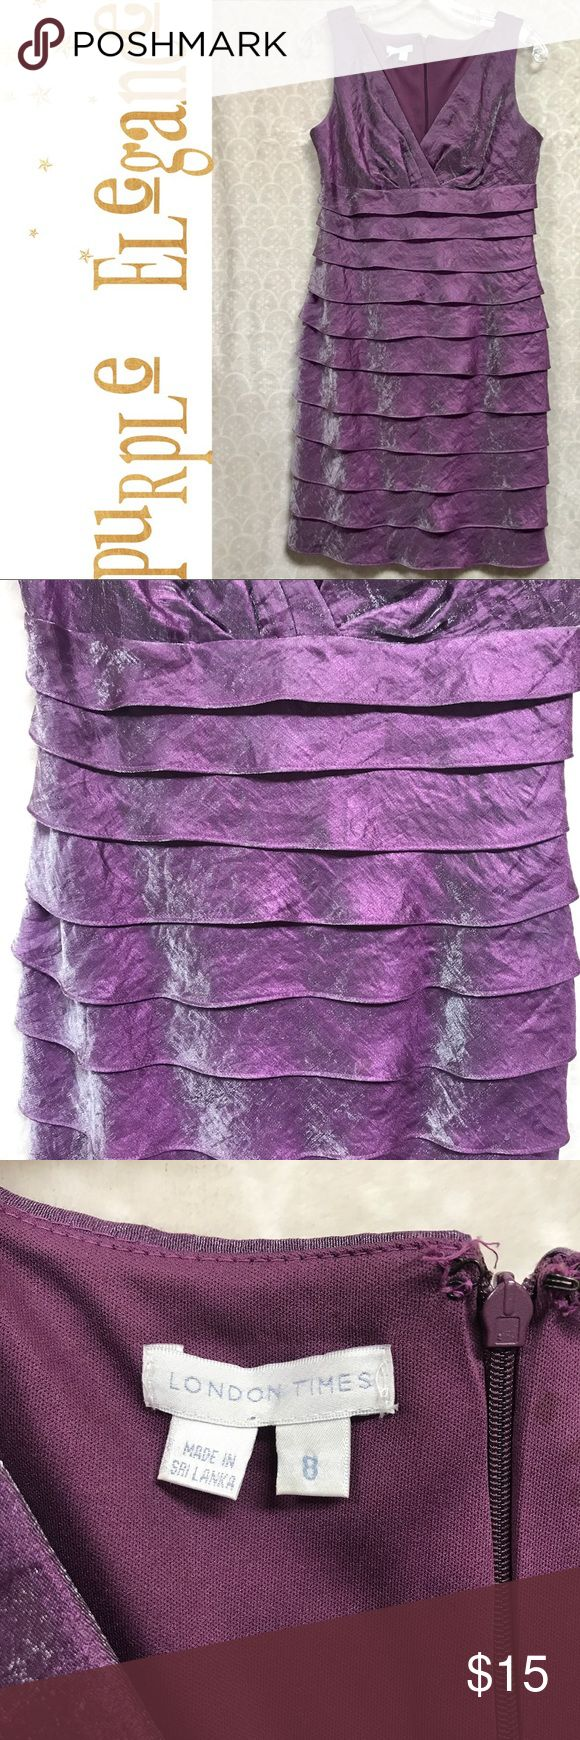 London Times a Pretty Purple Silklike Dress This dress is definitely not your stay at home kind of dress. It wants to go out on the town! It has a bit of a sheen reminiscent of a silk organza. It's a beautiful shade of purple. This dress has a very flattering V-neck design and measures 35 inches in circumference just beneath the armpit and 36 inches in length. Please note there are some water spots on the lining on the inside back near the zipper. The outside of the dress is excellent with…